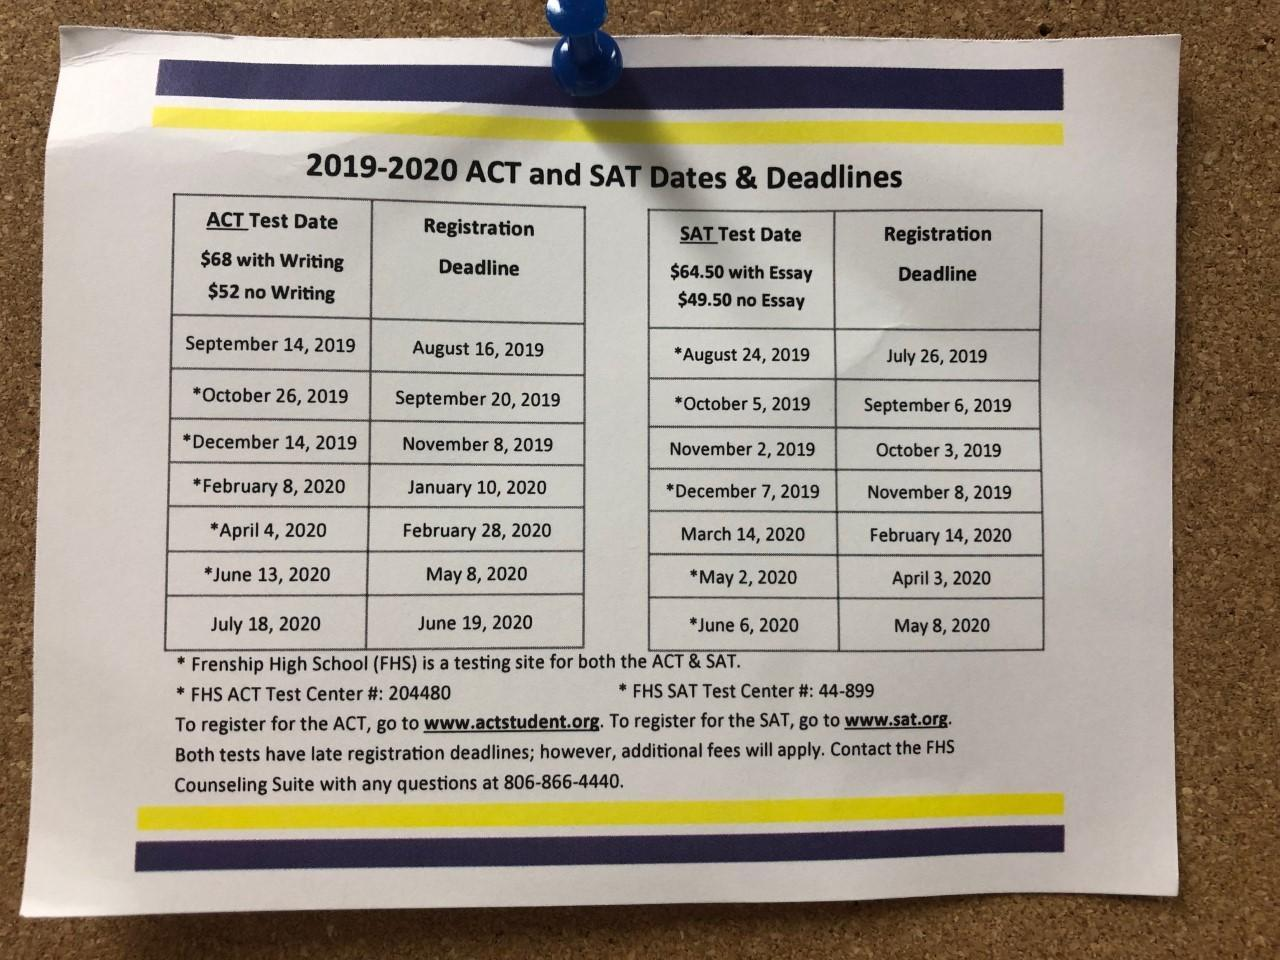 2019-2020 ACT and SAT Dates & Deadlines